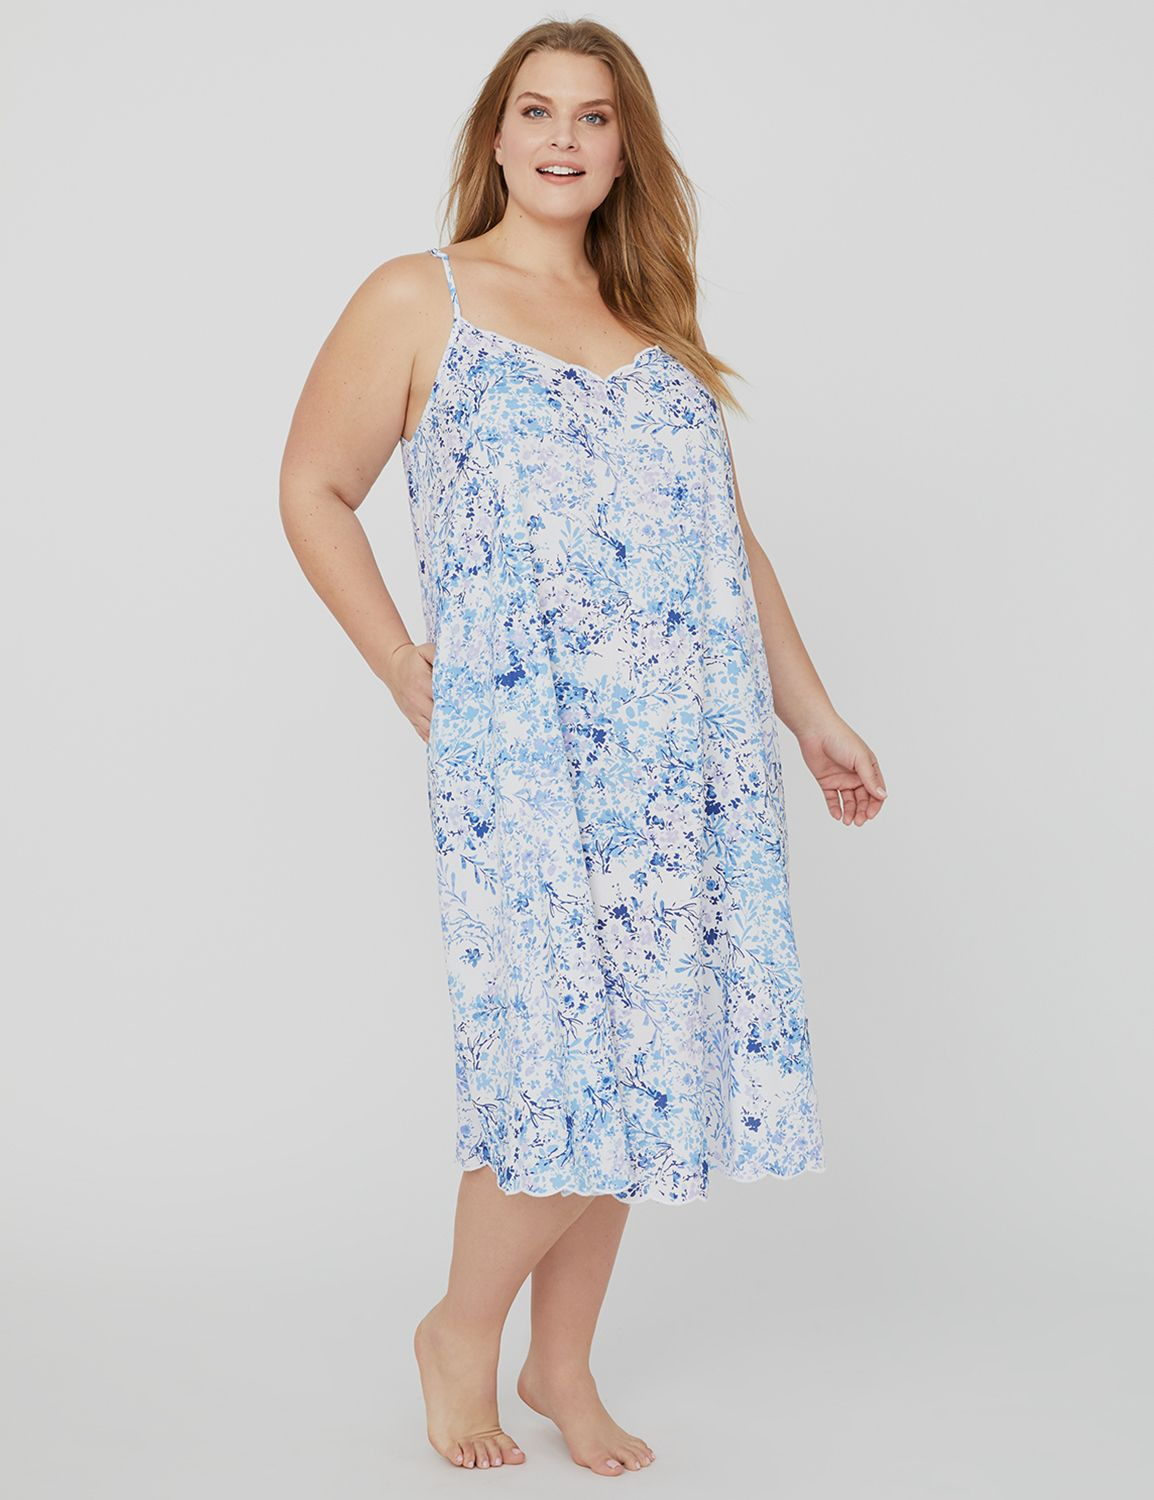 Scalloped-Edge Sleep Gown 1088493- Printed Challis Woven Midi MP-300096261